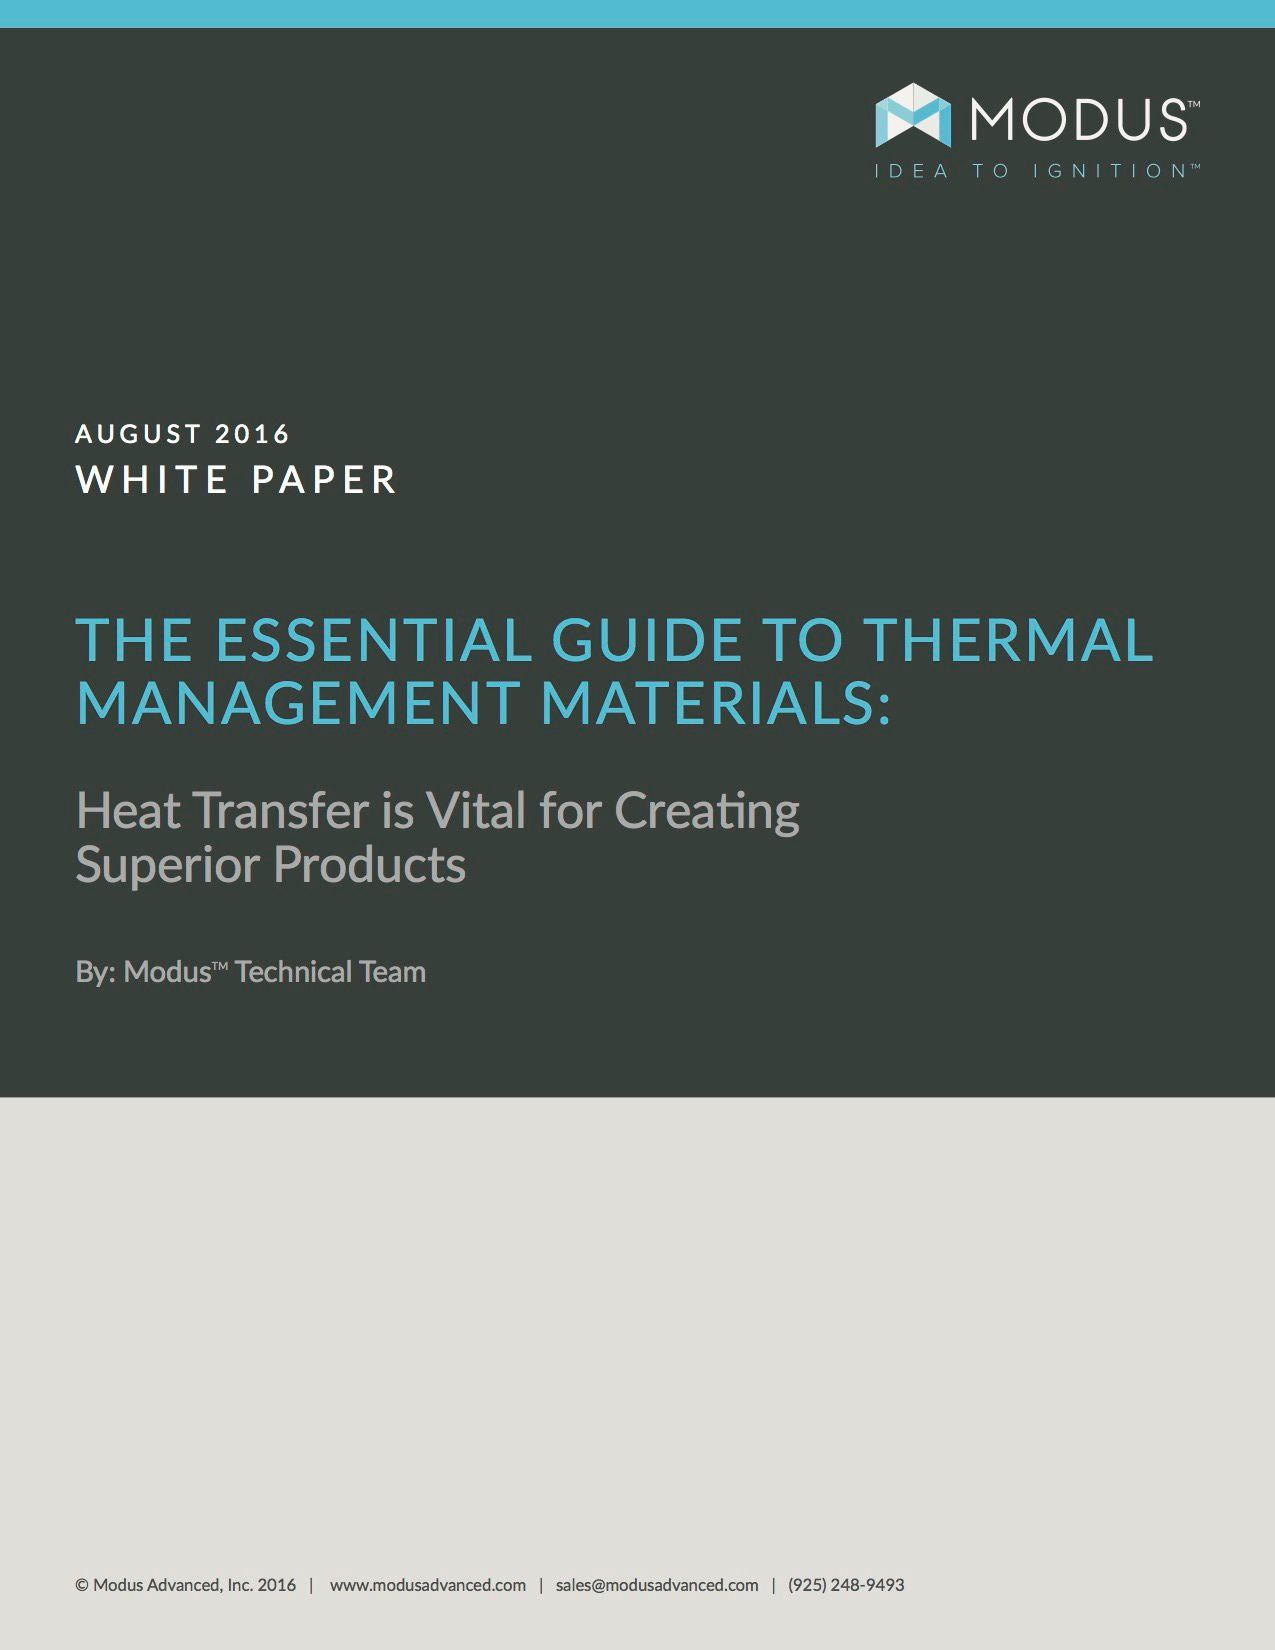 Thermal_Management_White_Paper.jpg